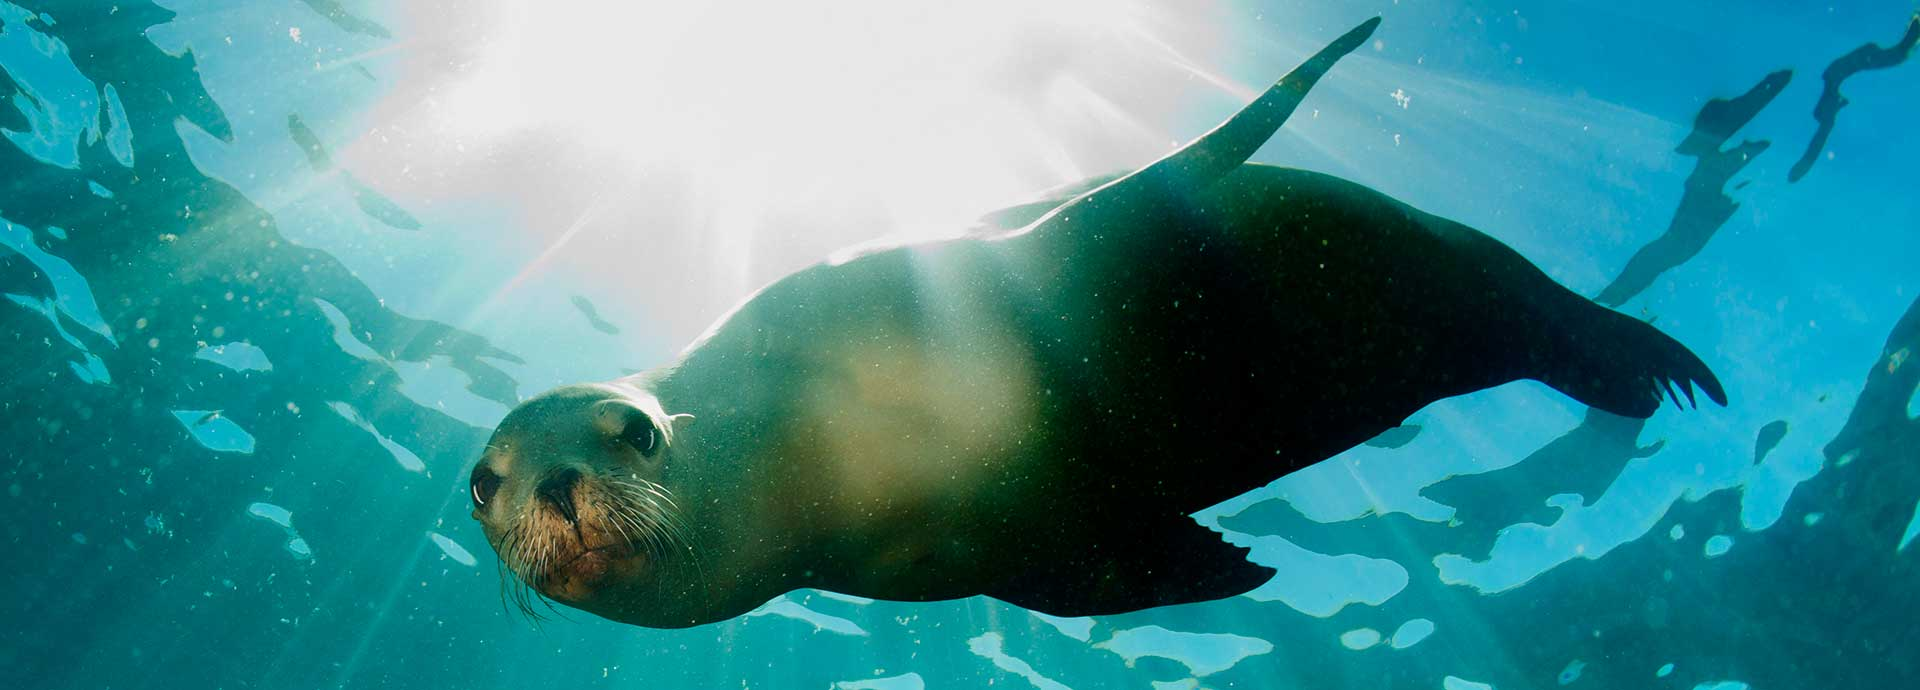 At the forefront of preserving marine life